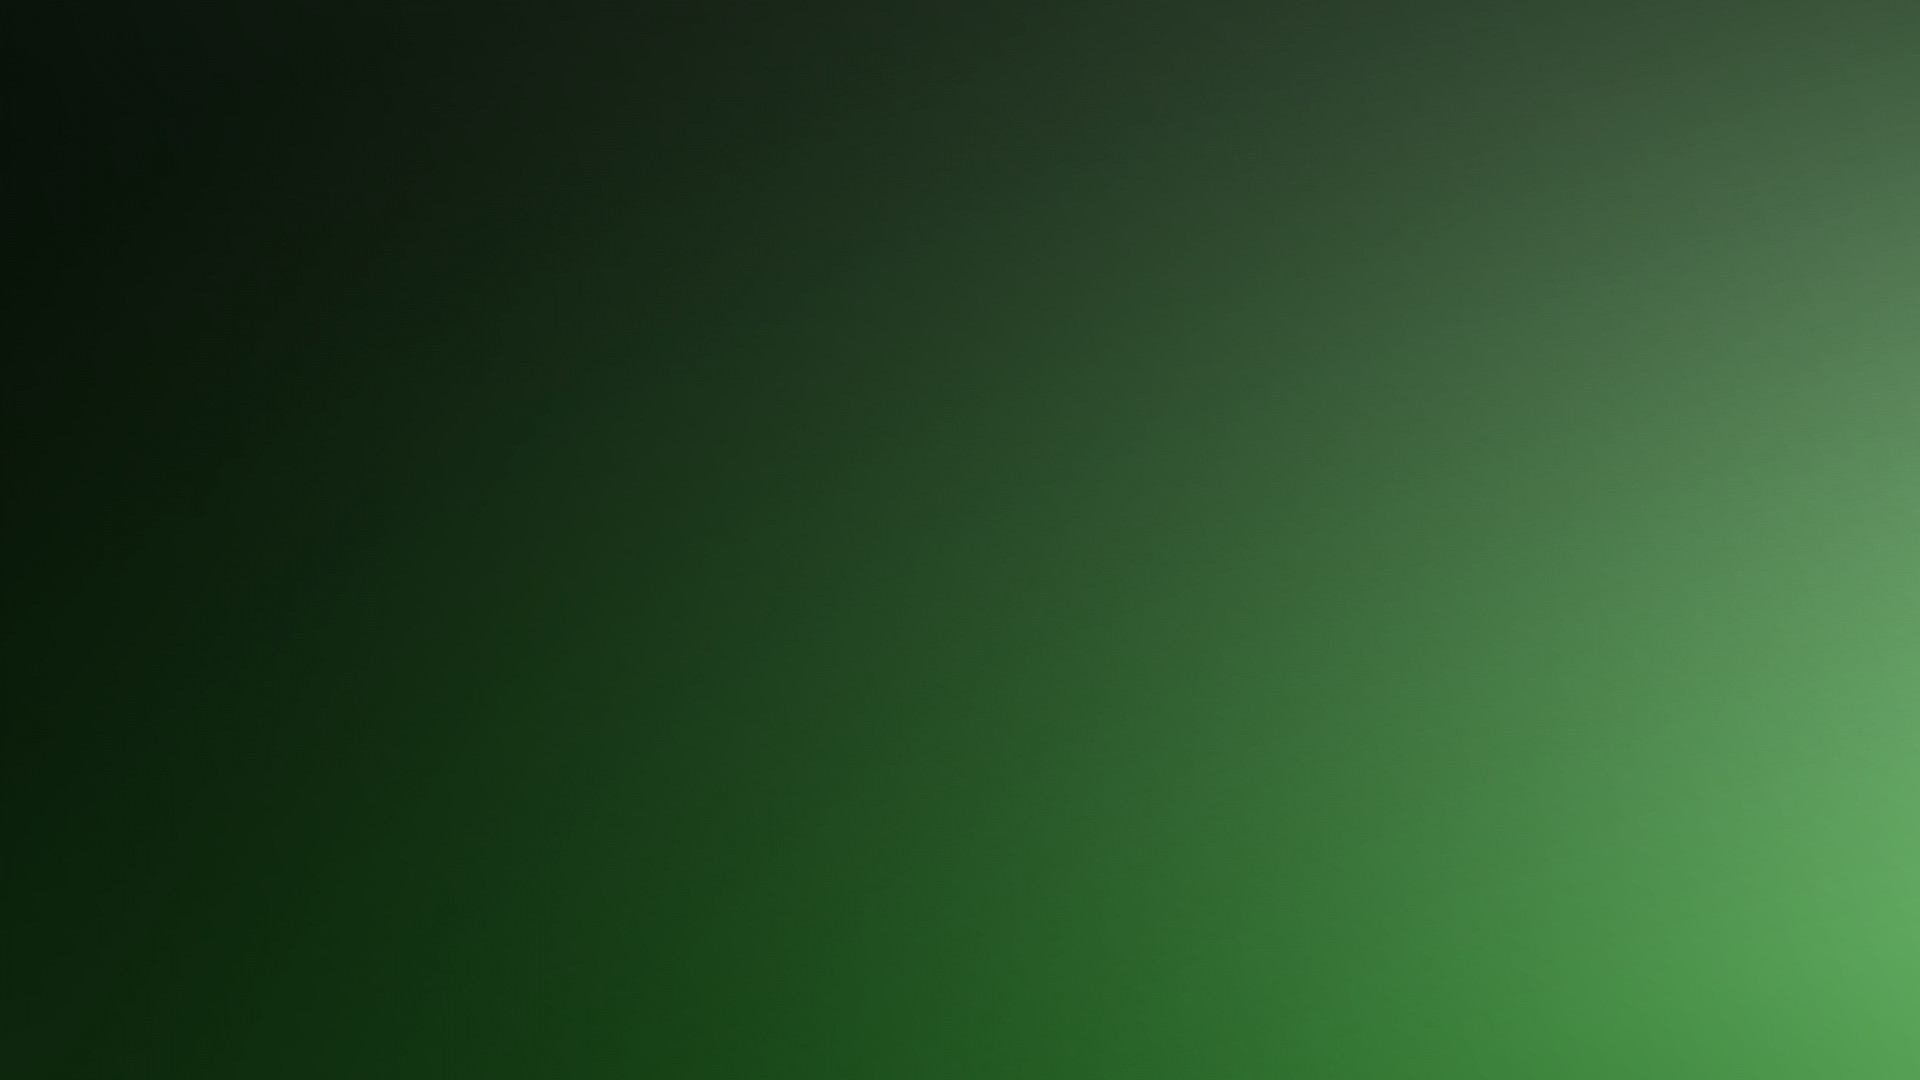 1920x1080  Wallpaper green, background, texture, solid, color